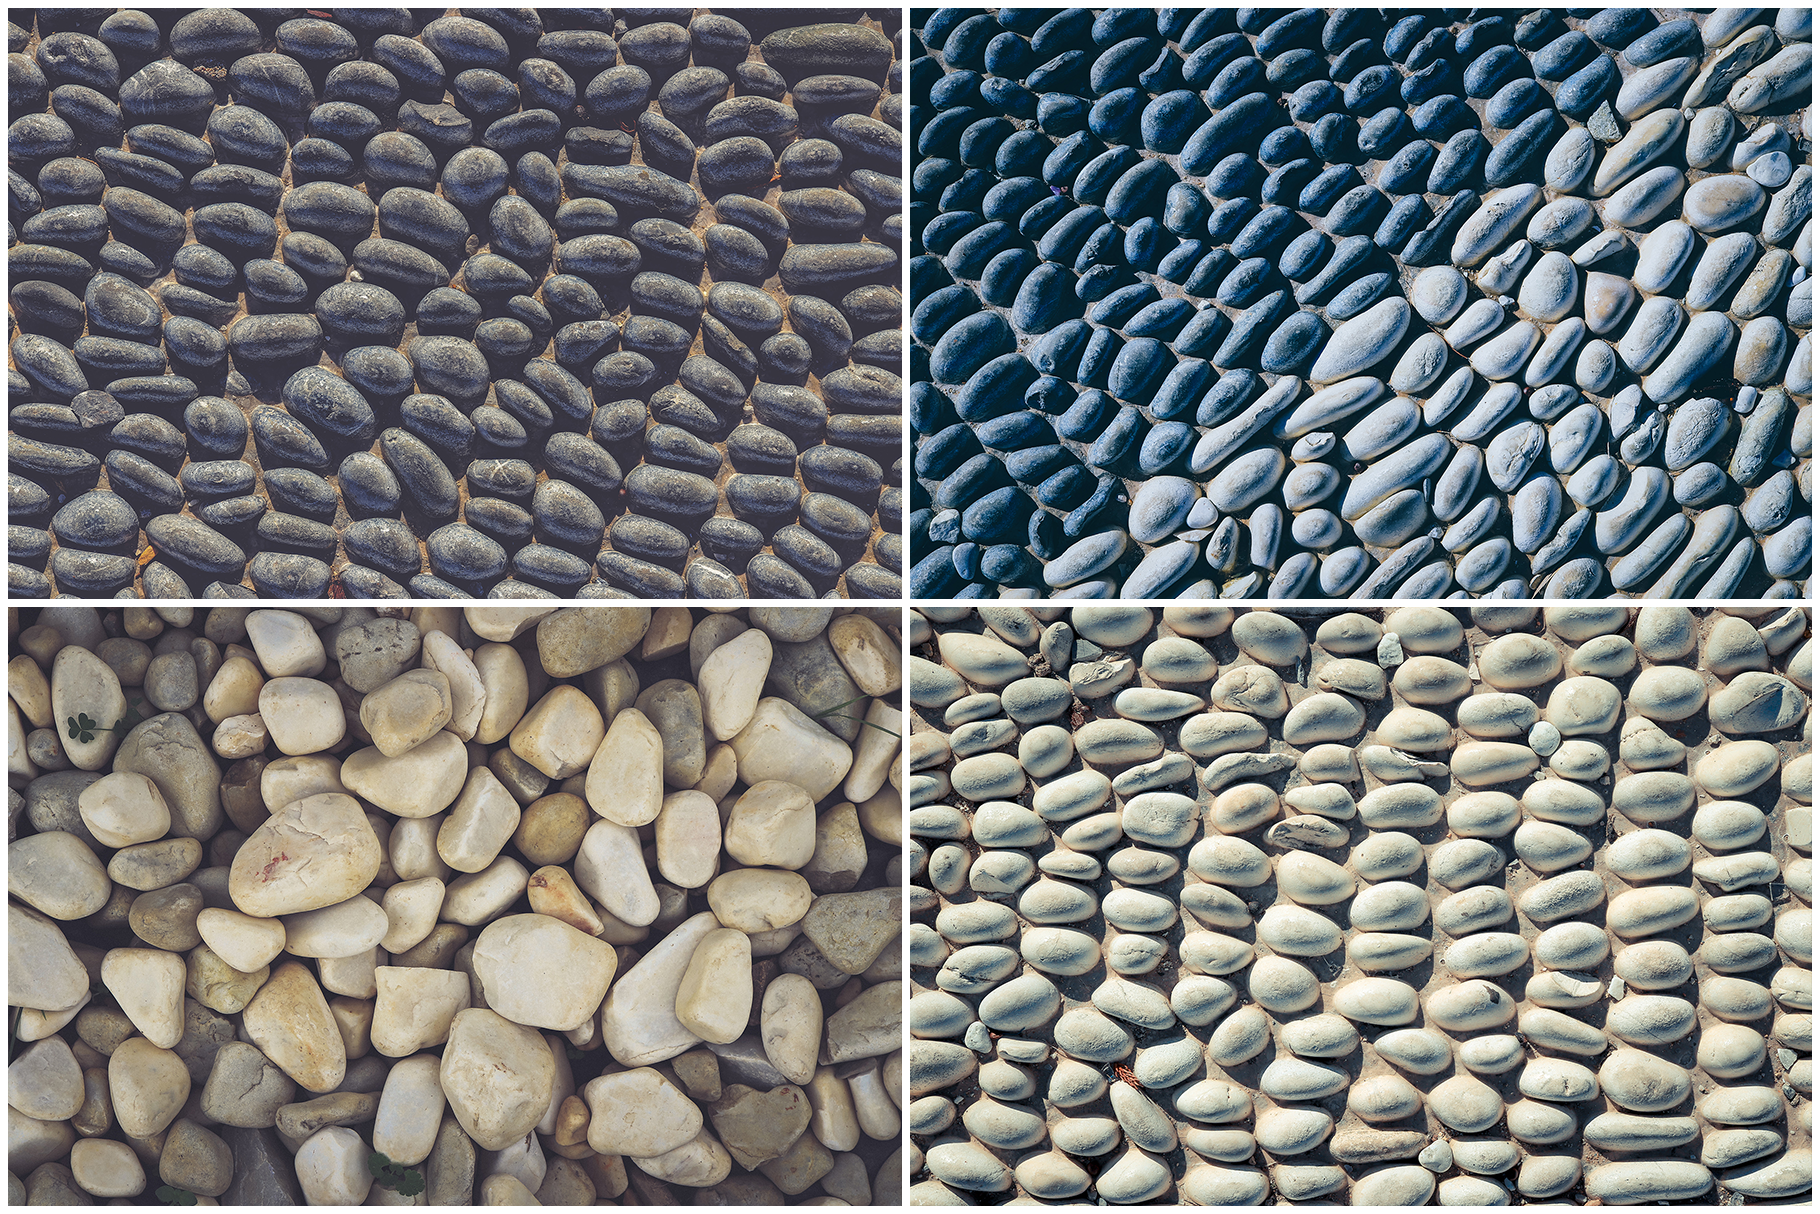 23 Pebble Background Textures example image 6